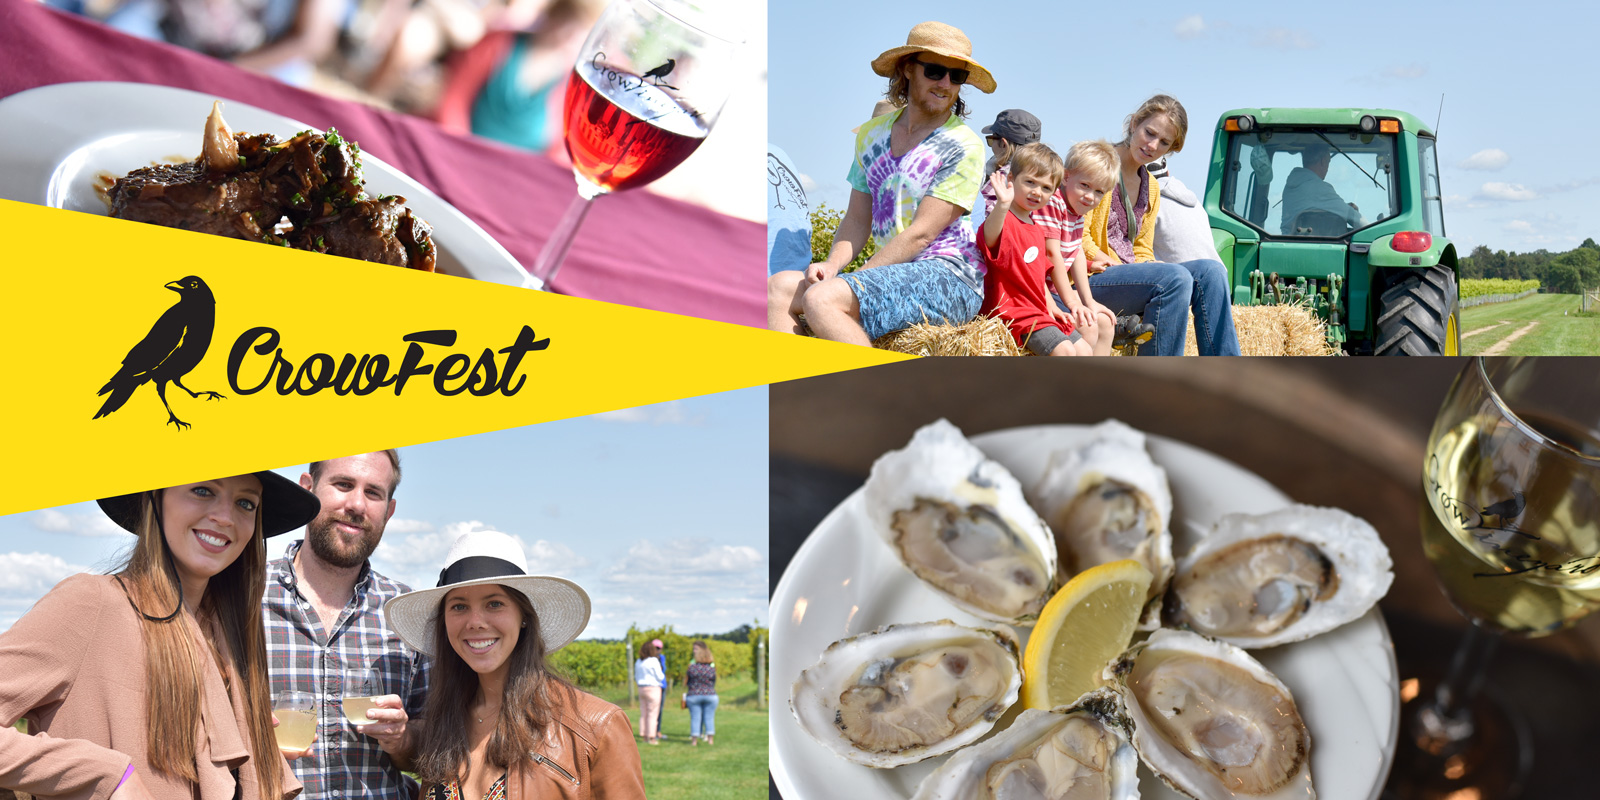 CrowFest at Crow Vineyard and Winery